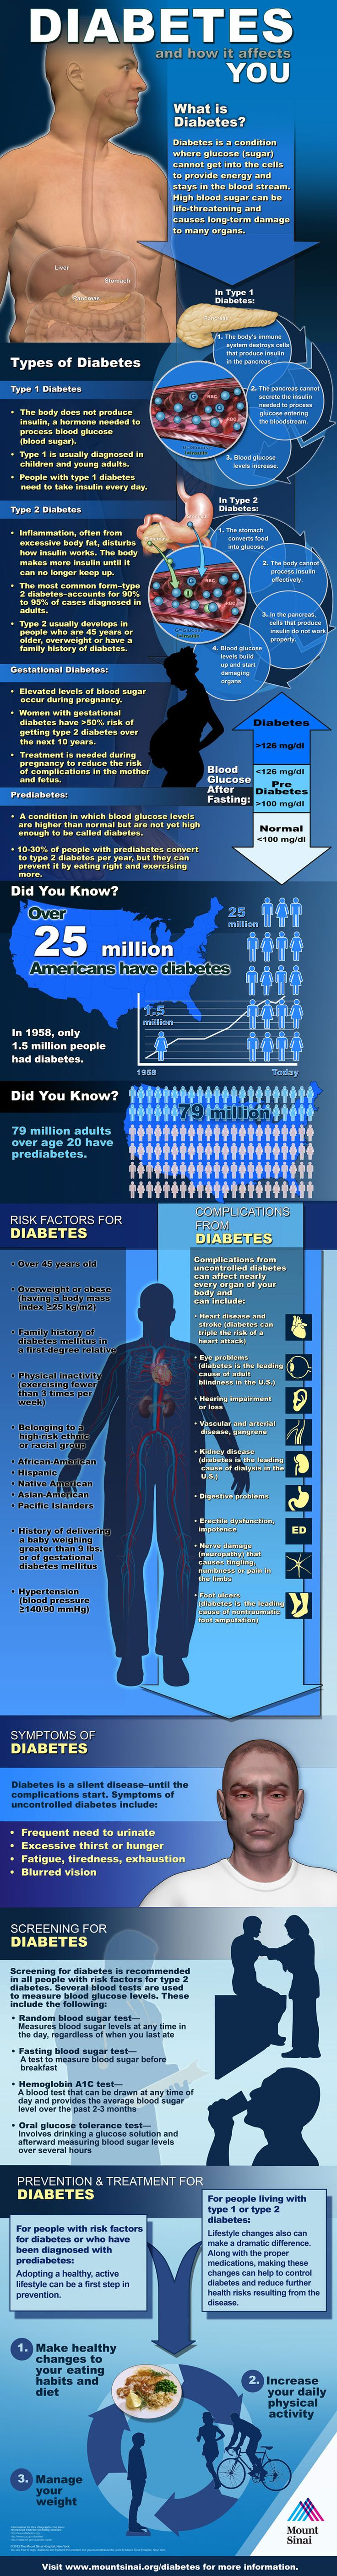 Type 1 diabetes is a very severe